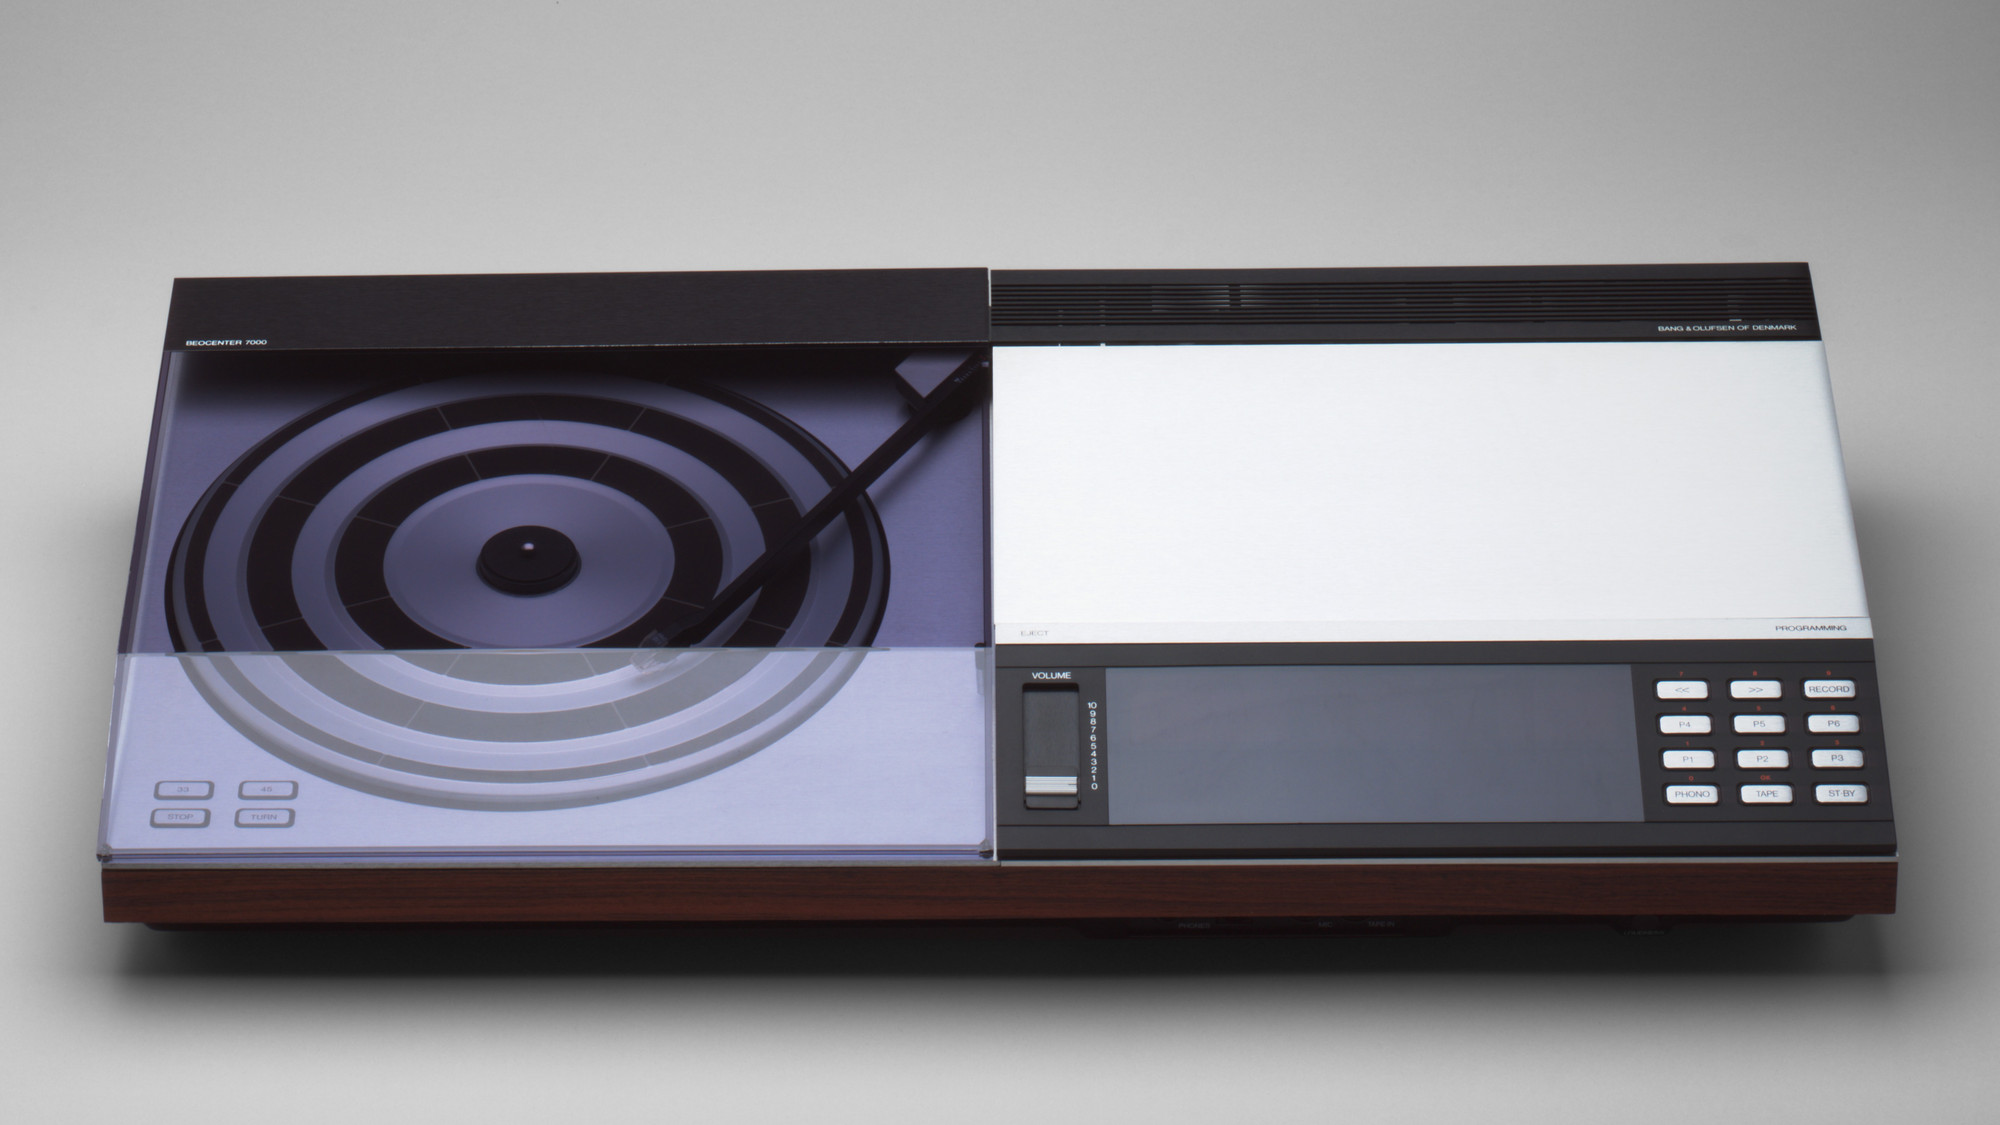 Jacob Jensen. Beocenter 7000 Radio-Turntable-Cassette Combination. 1979